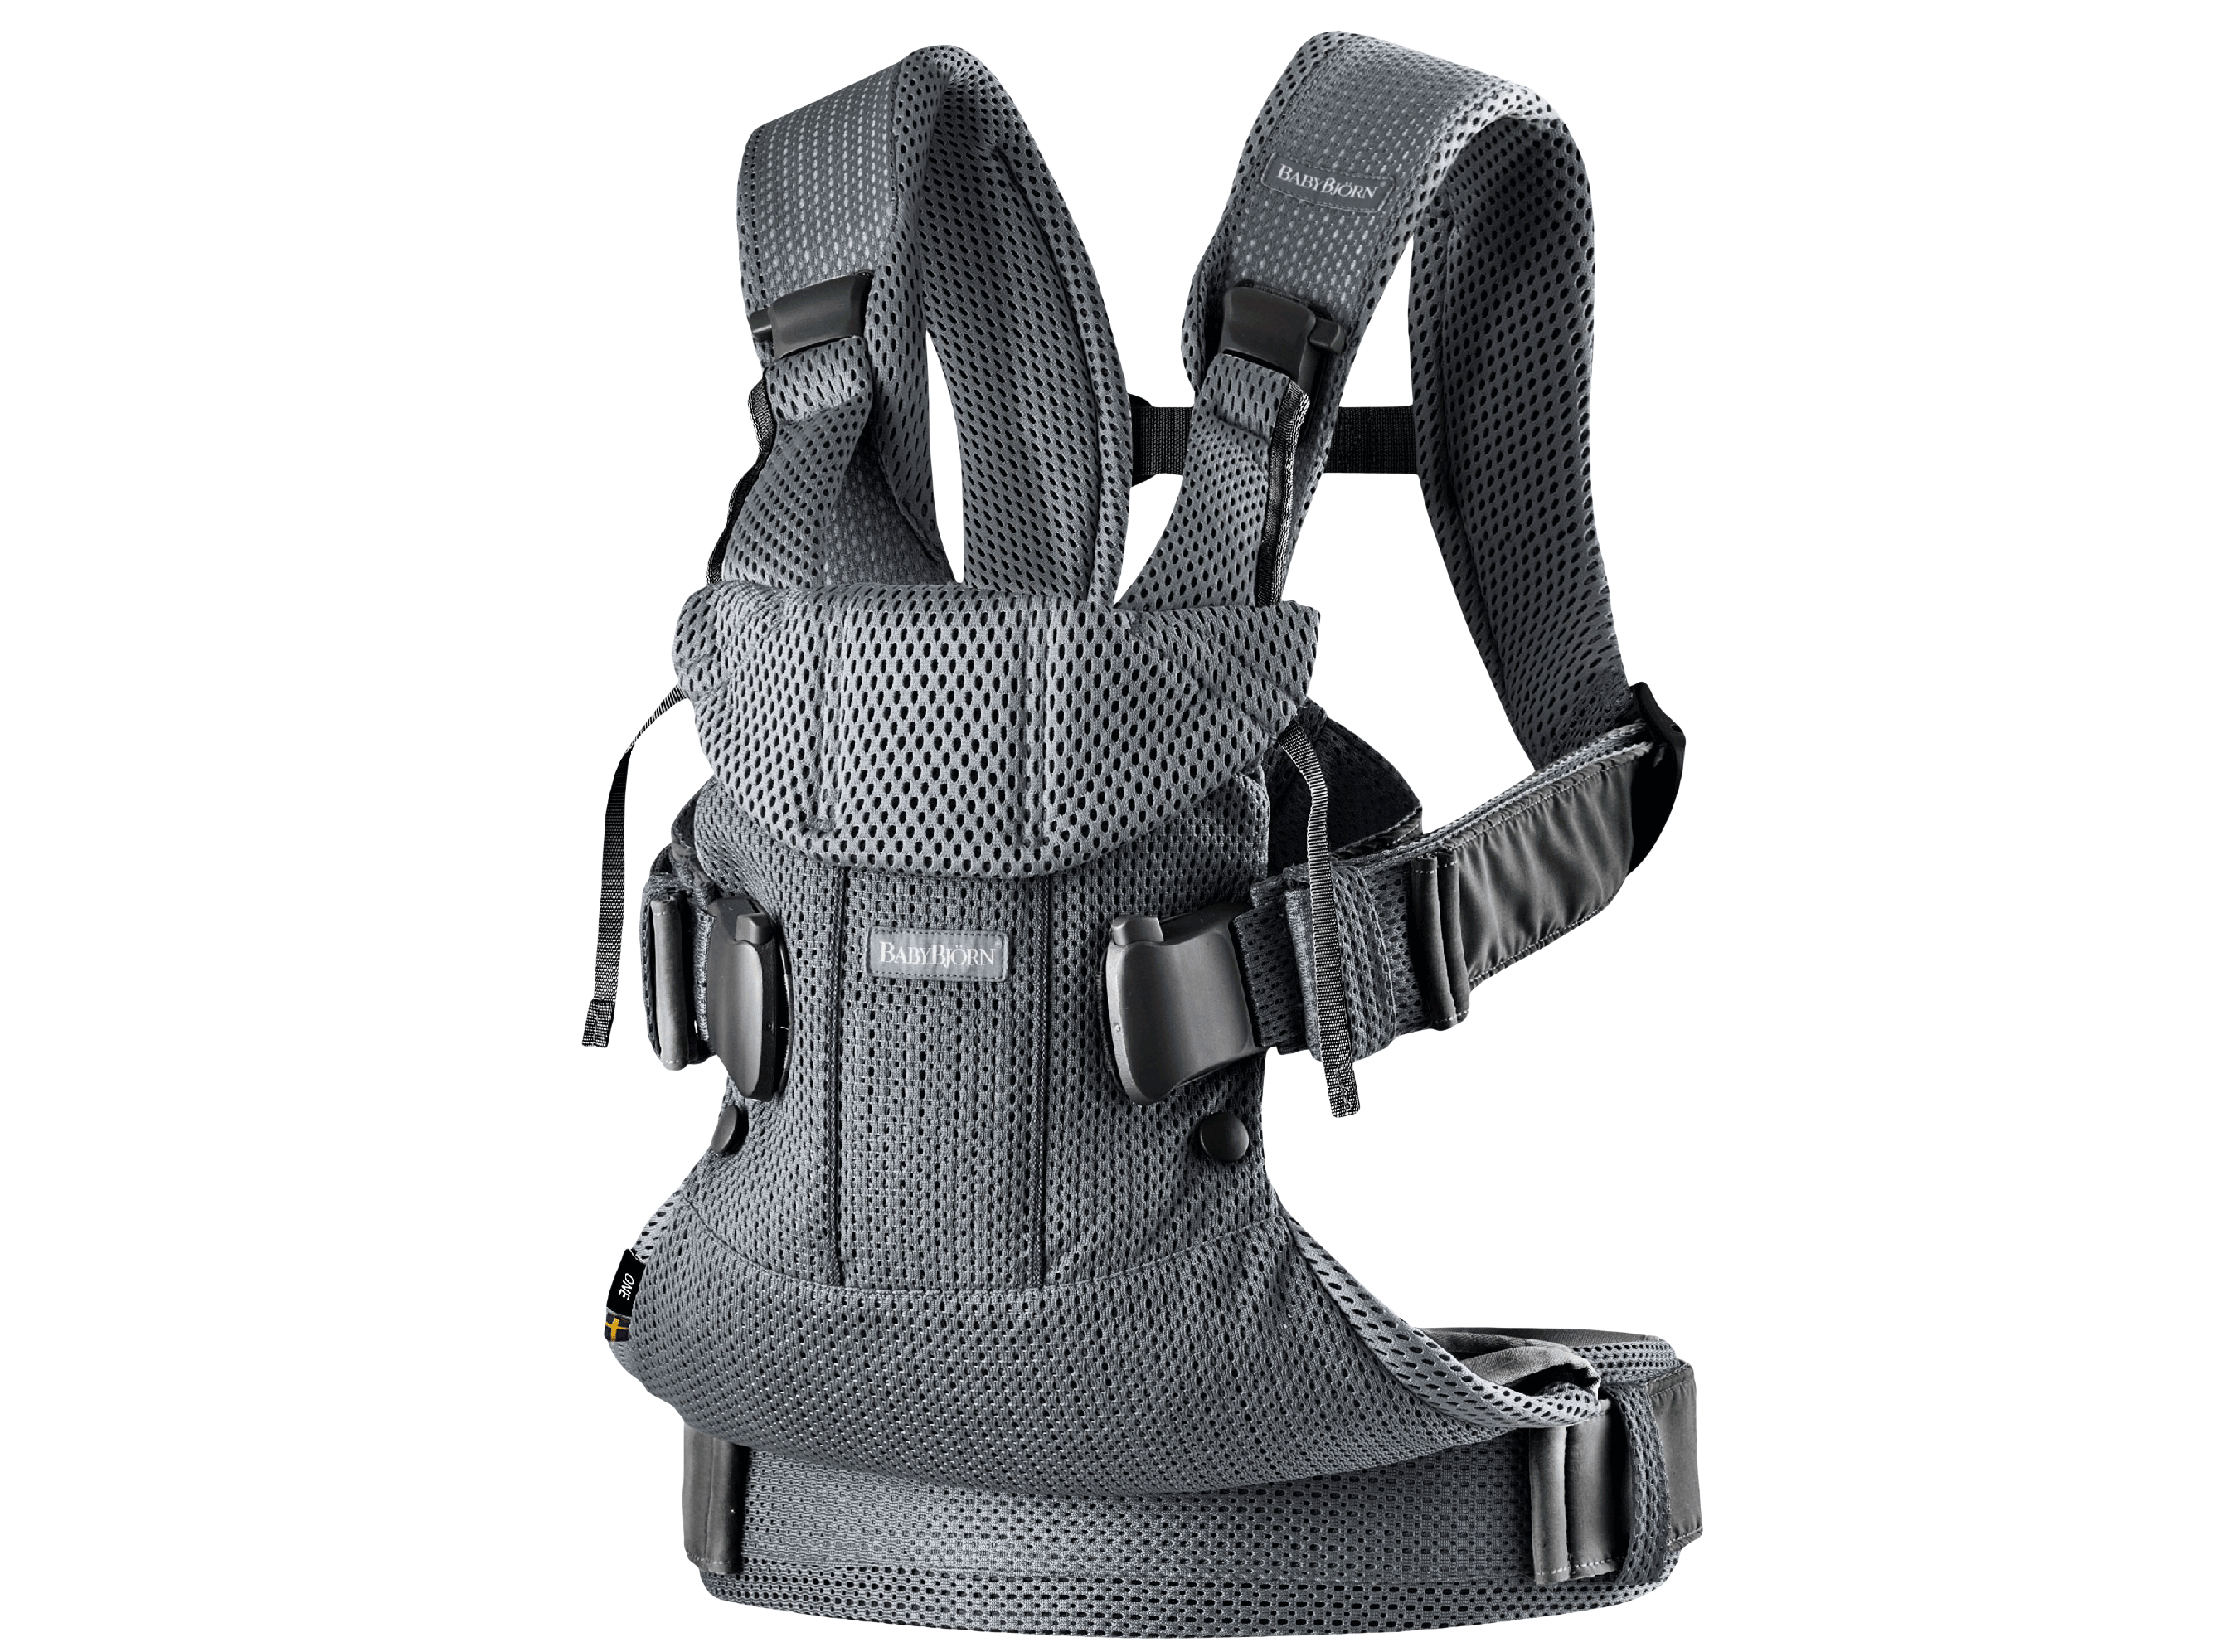 Baby Carrier One Air in anthracite mesh, an ergonomic, soft and flexible baby carrier that can be used from new born to 3 years old, including front facing and back carrying.